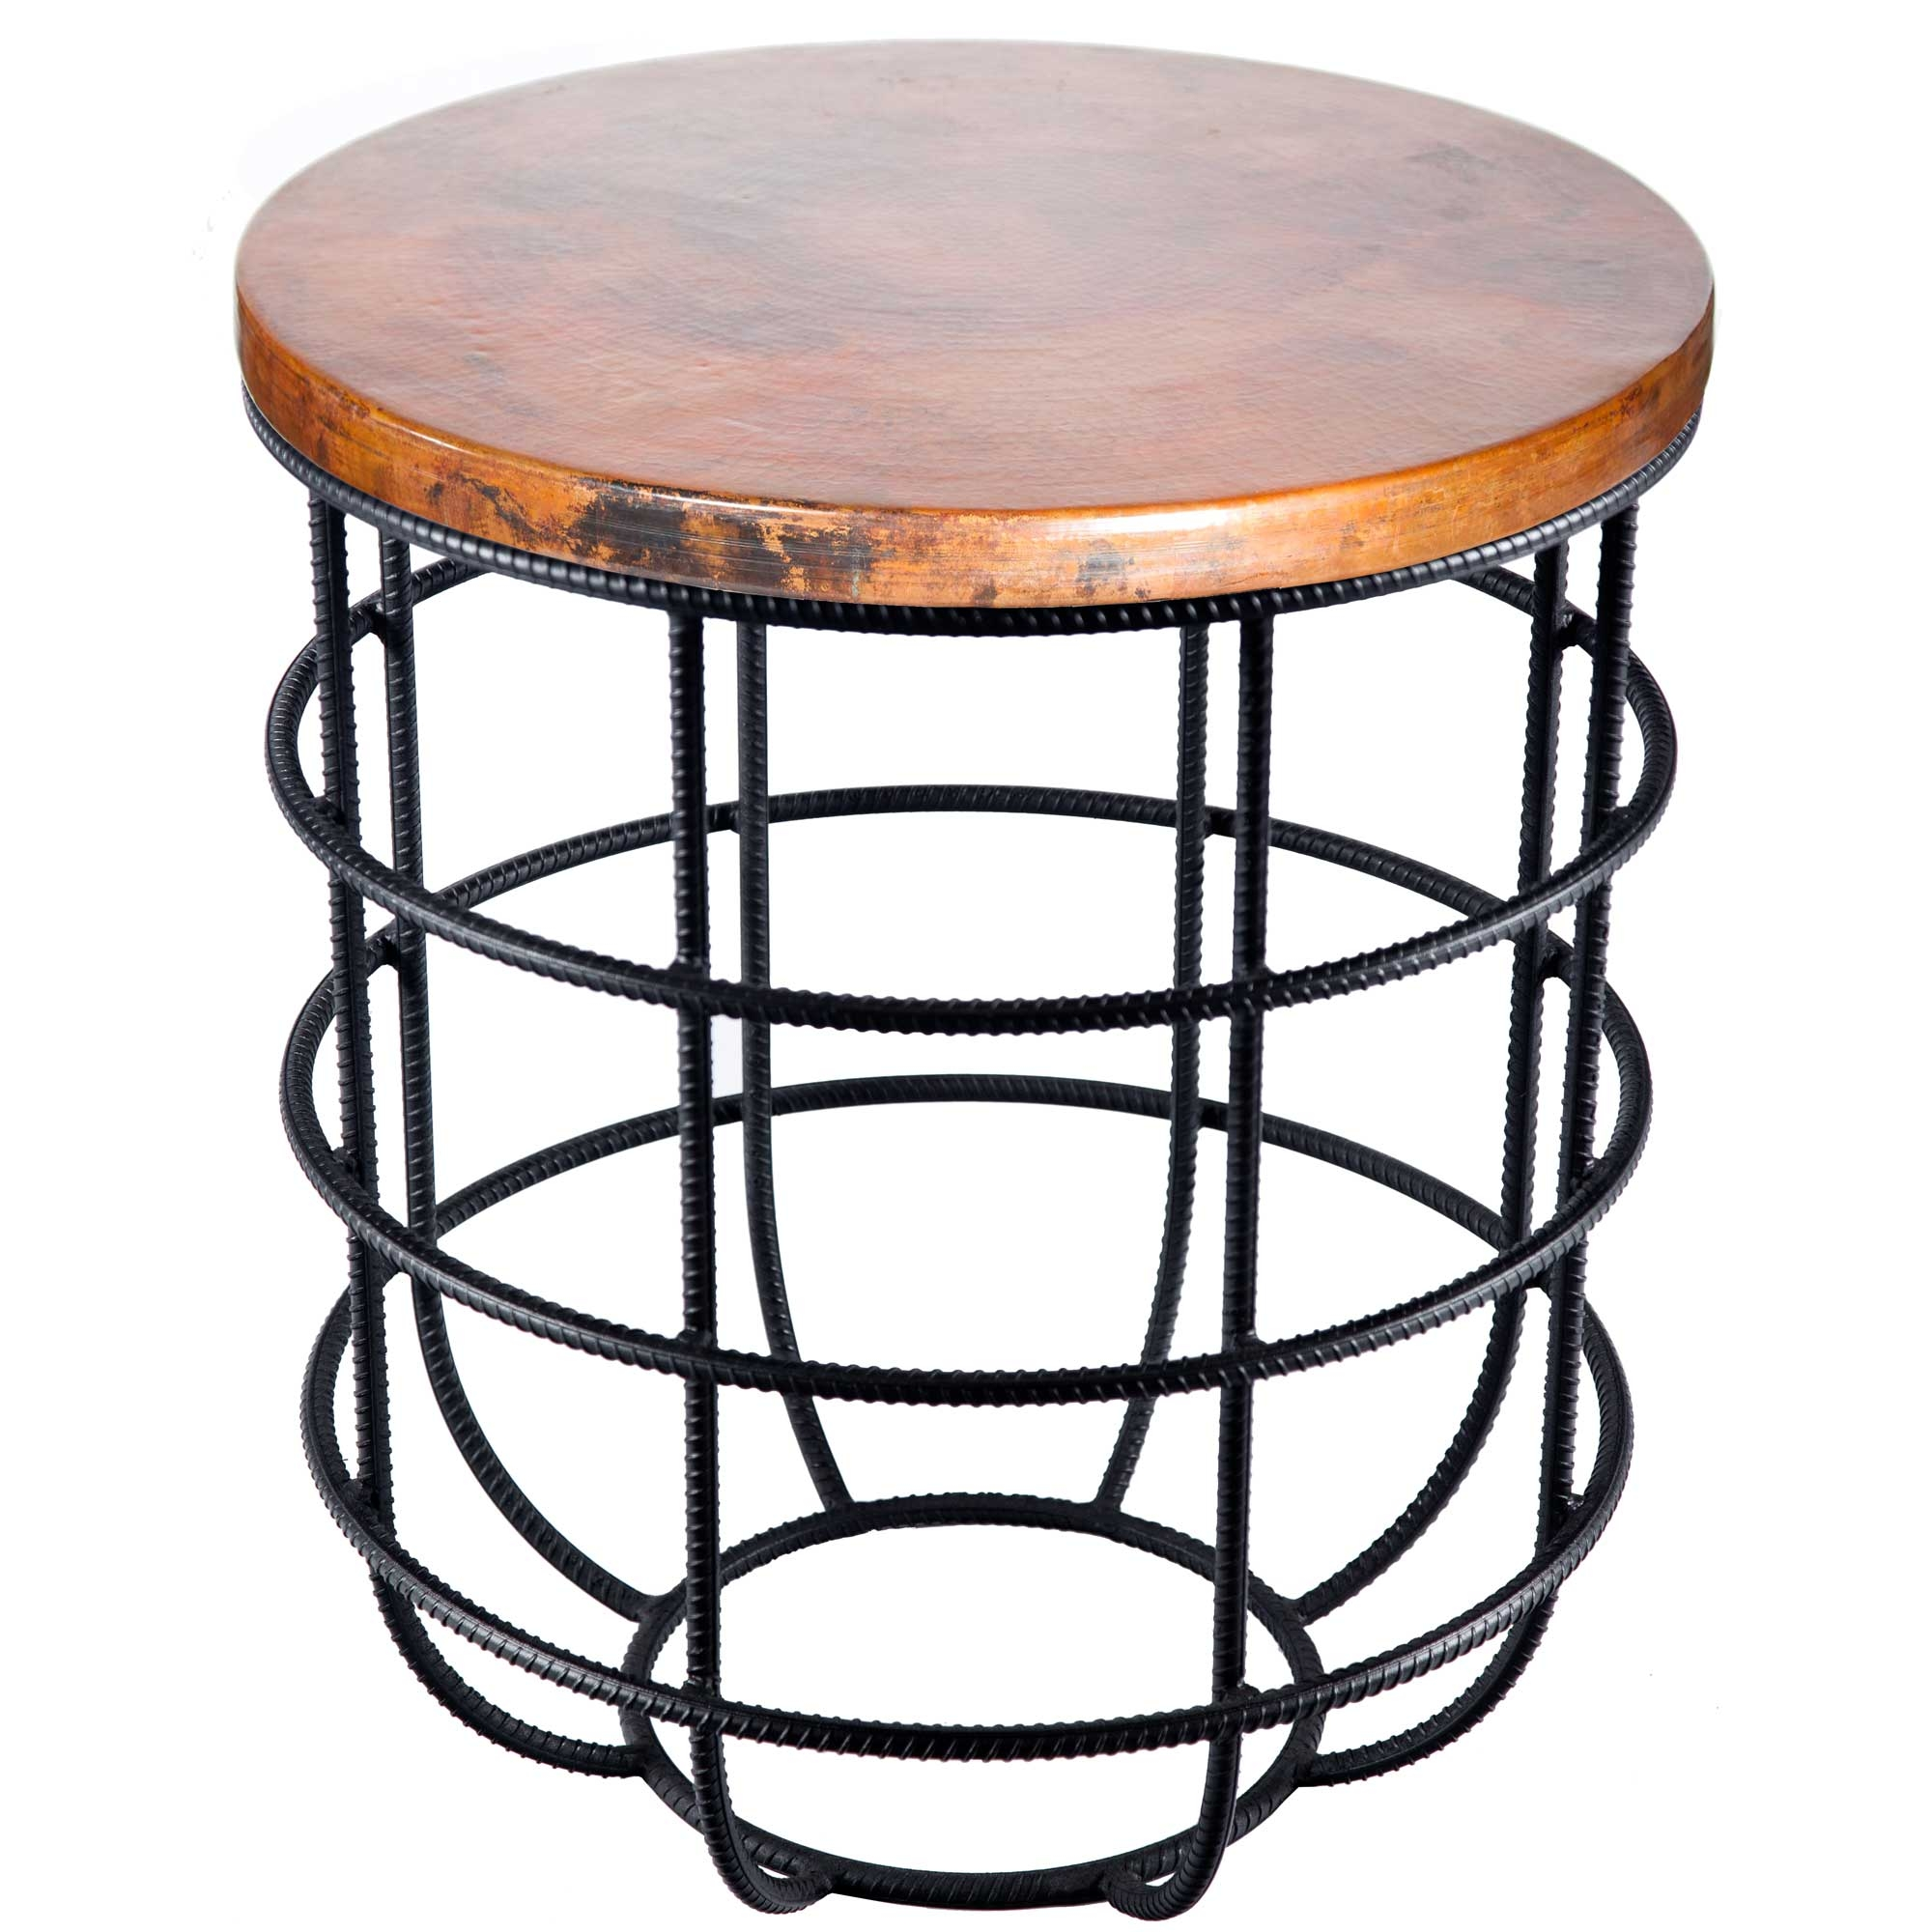 Axel Iron Side Table With Round Hammered Copper Top